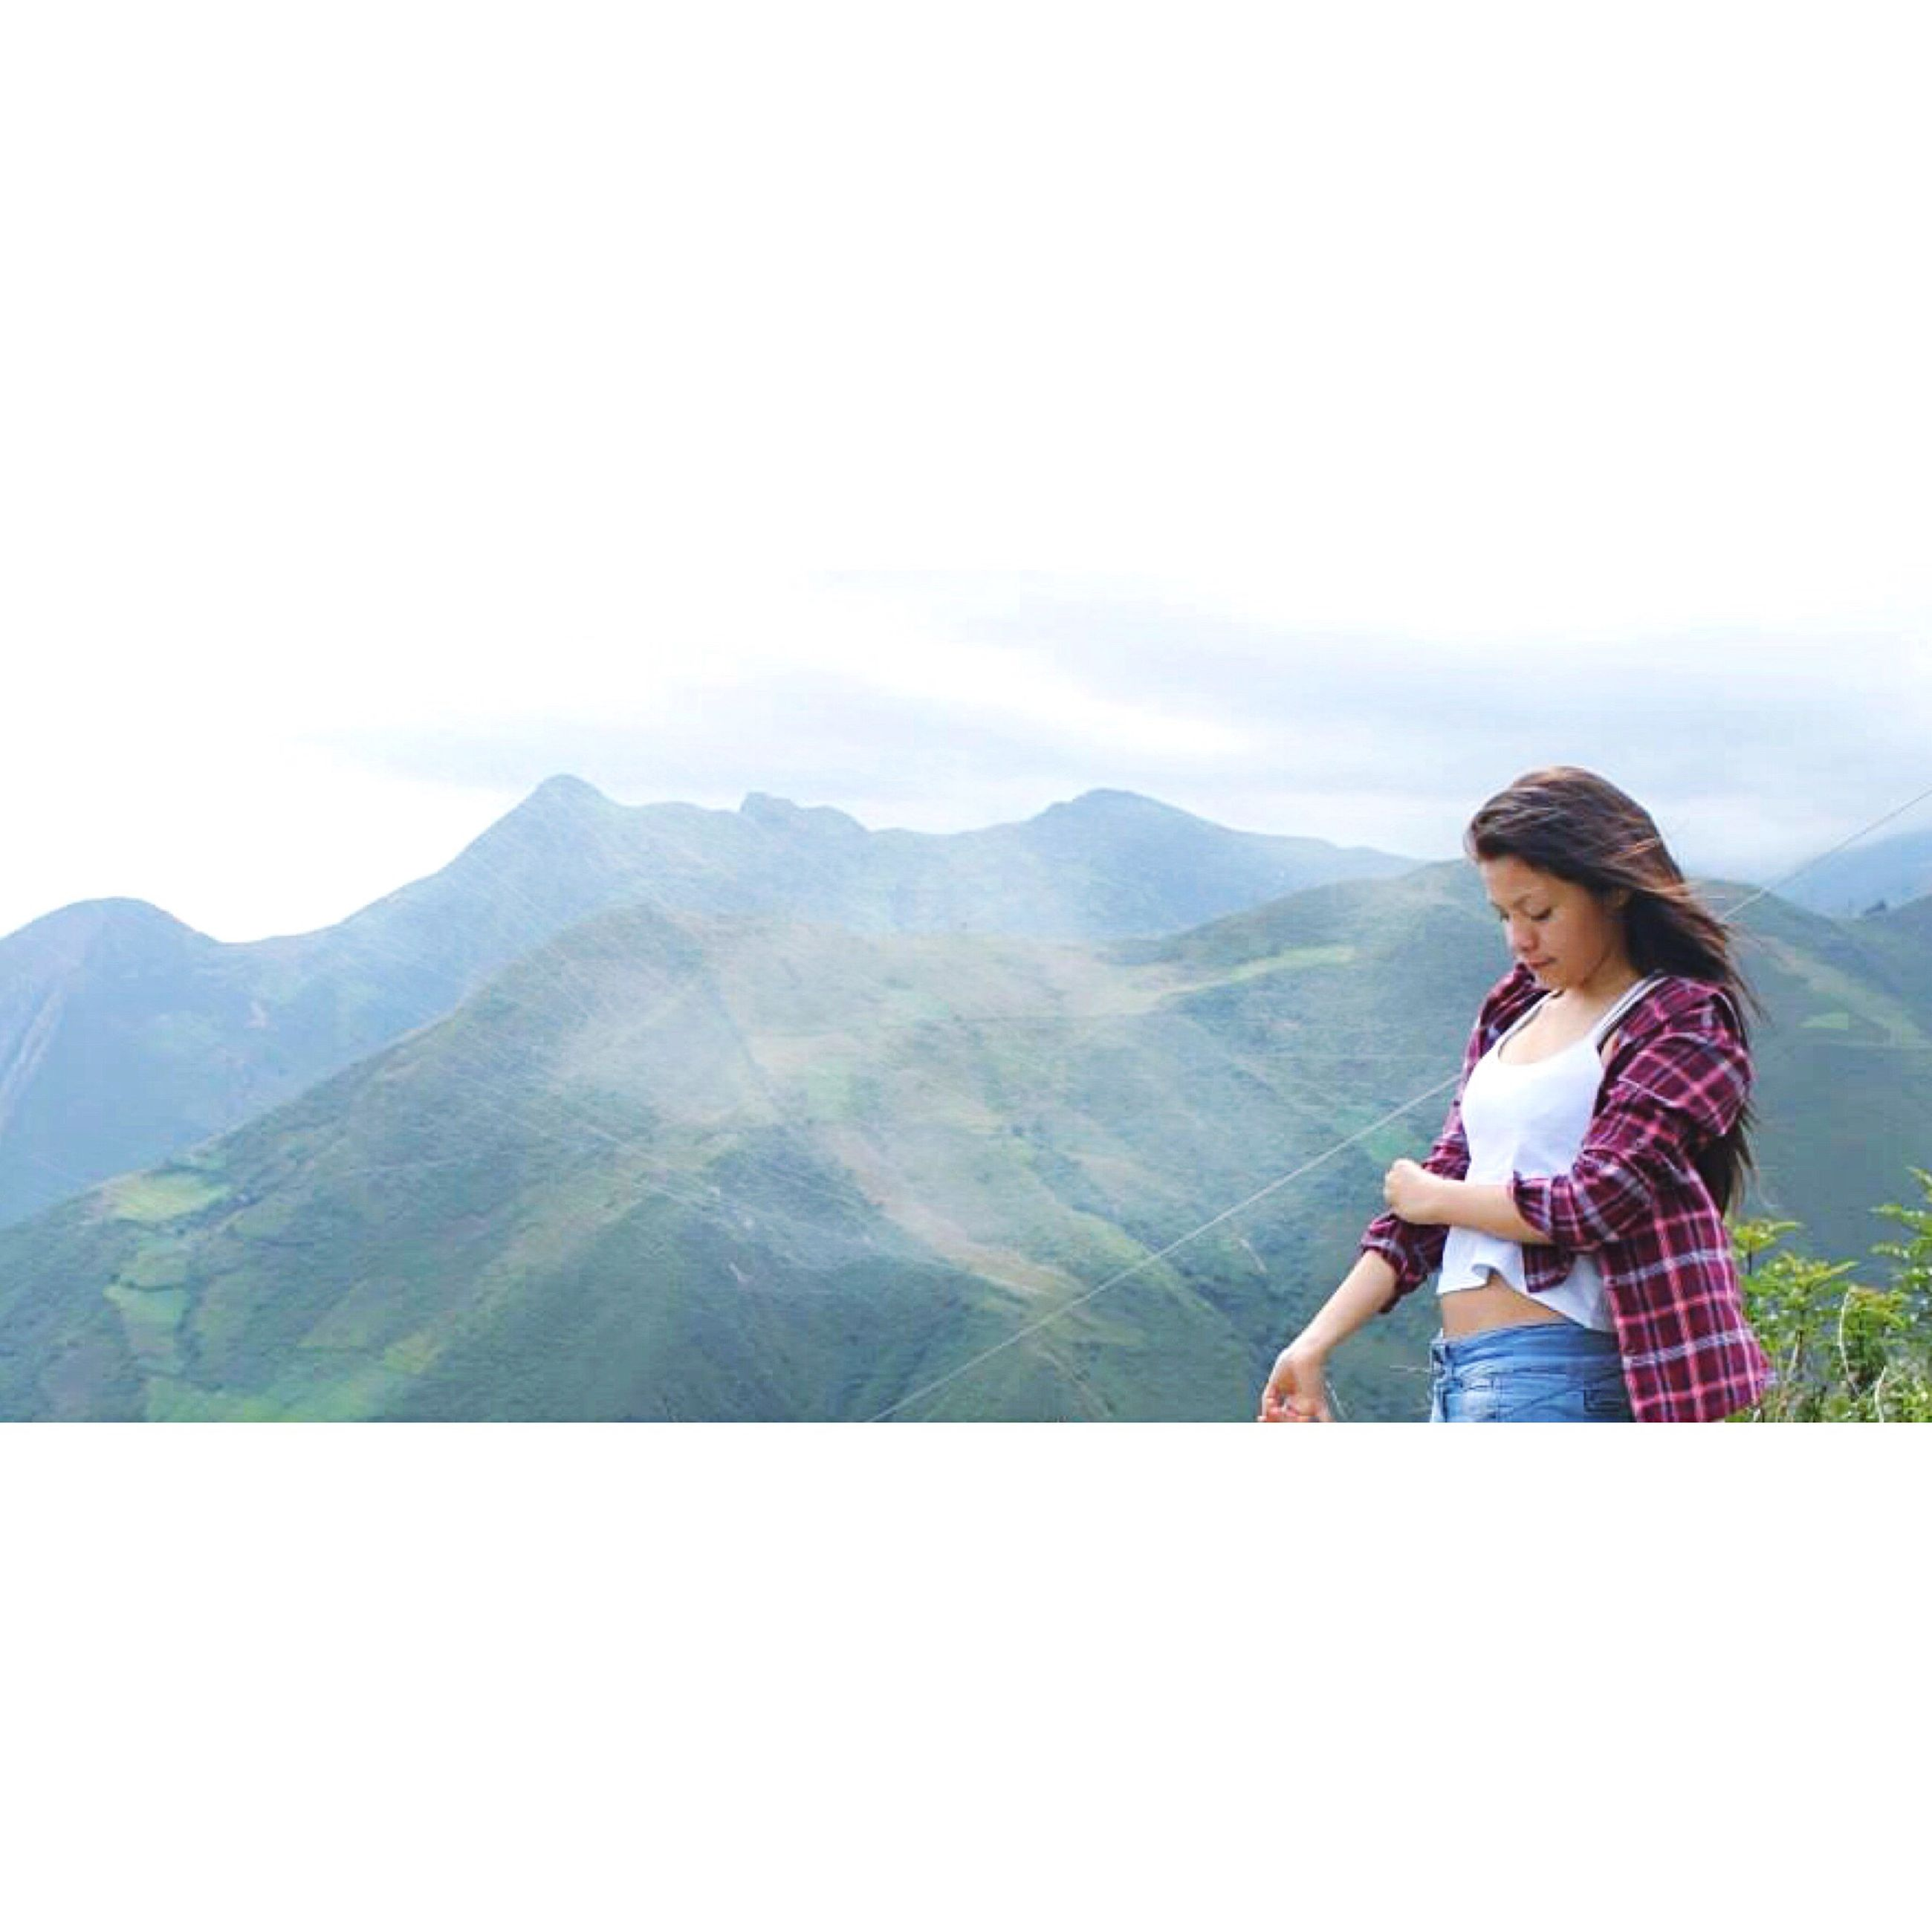 mountain, lifestyles, leisure activity, young adult, mountain range, casual clothing, sitting, full length, looking at view, young women, tranquil scene, tranquility, scenics, rear view, standing, three quarter length, landscape, copy space